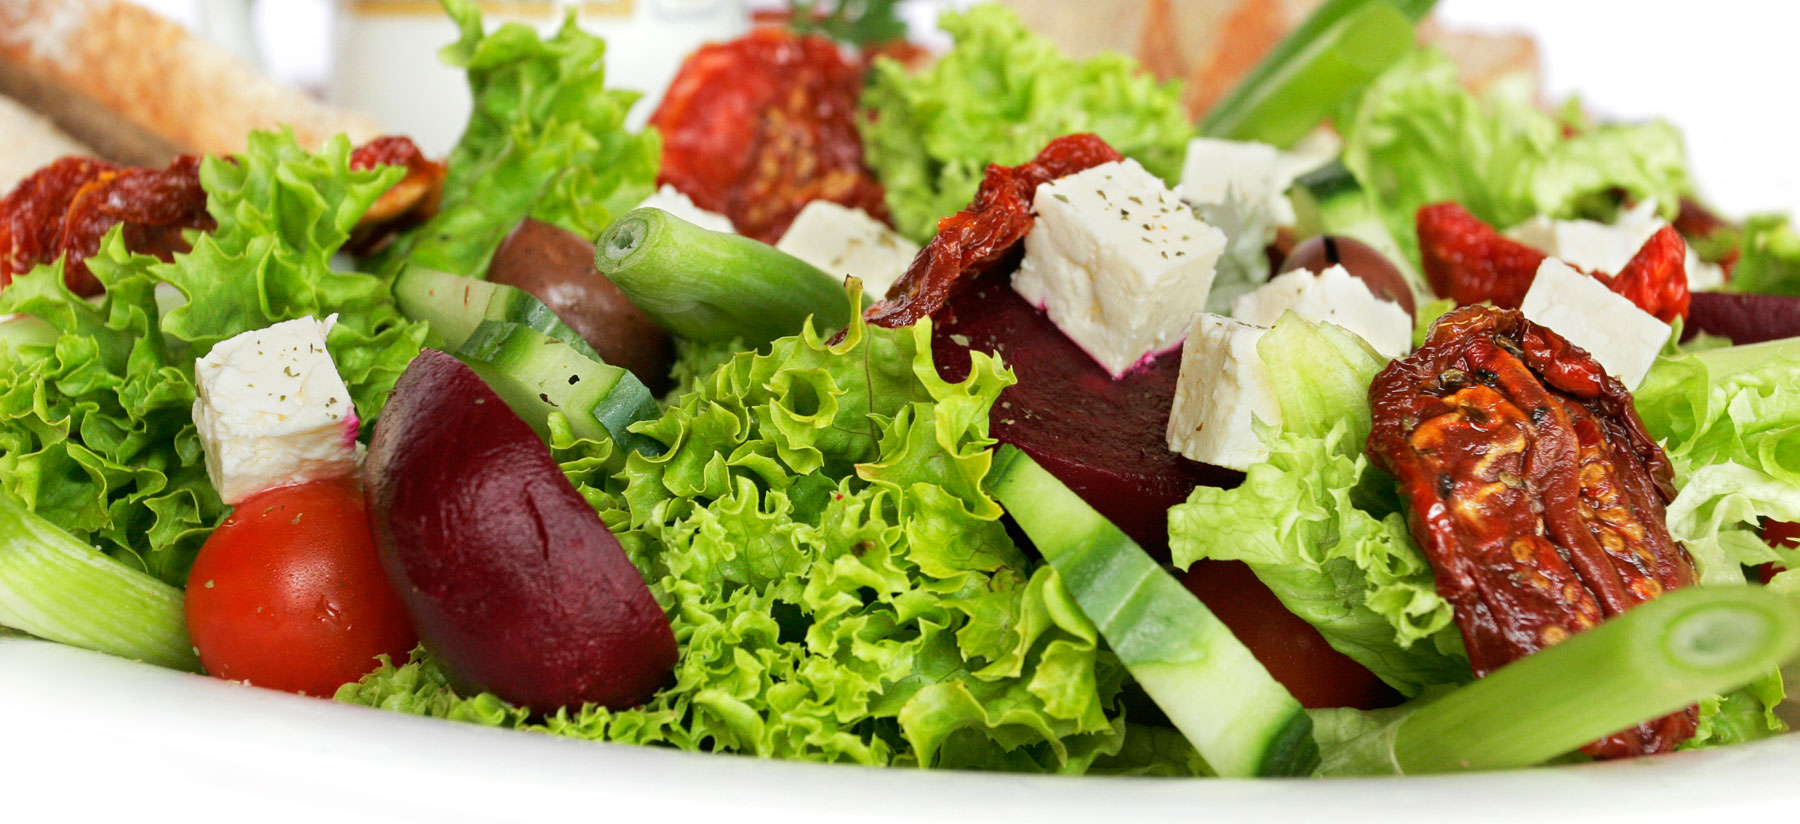 Assorted salad vegetables in a platter, against a white background